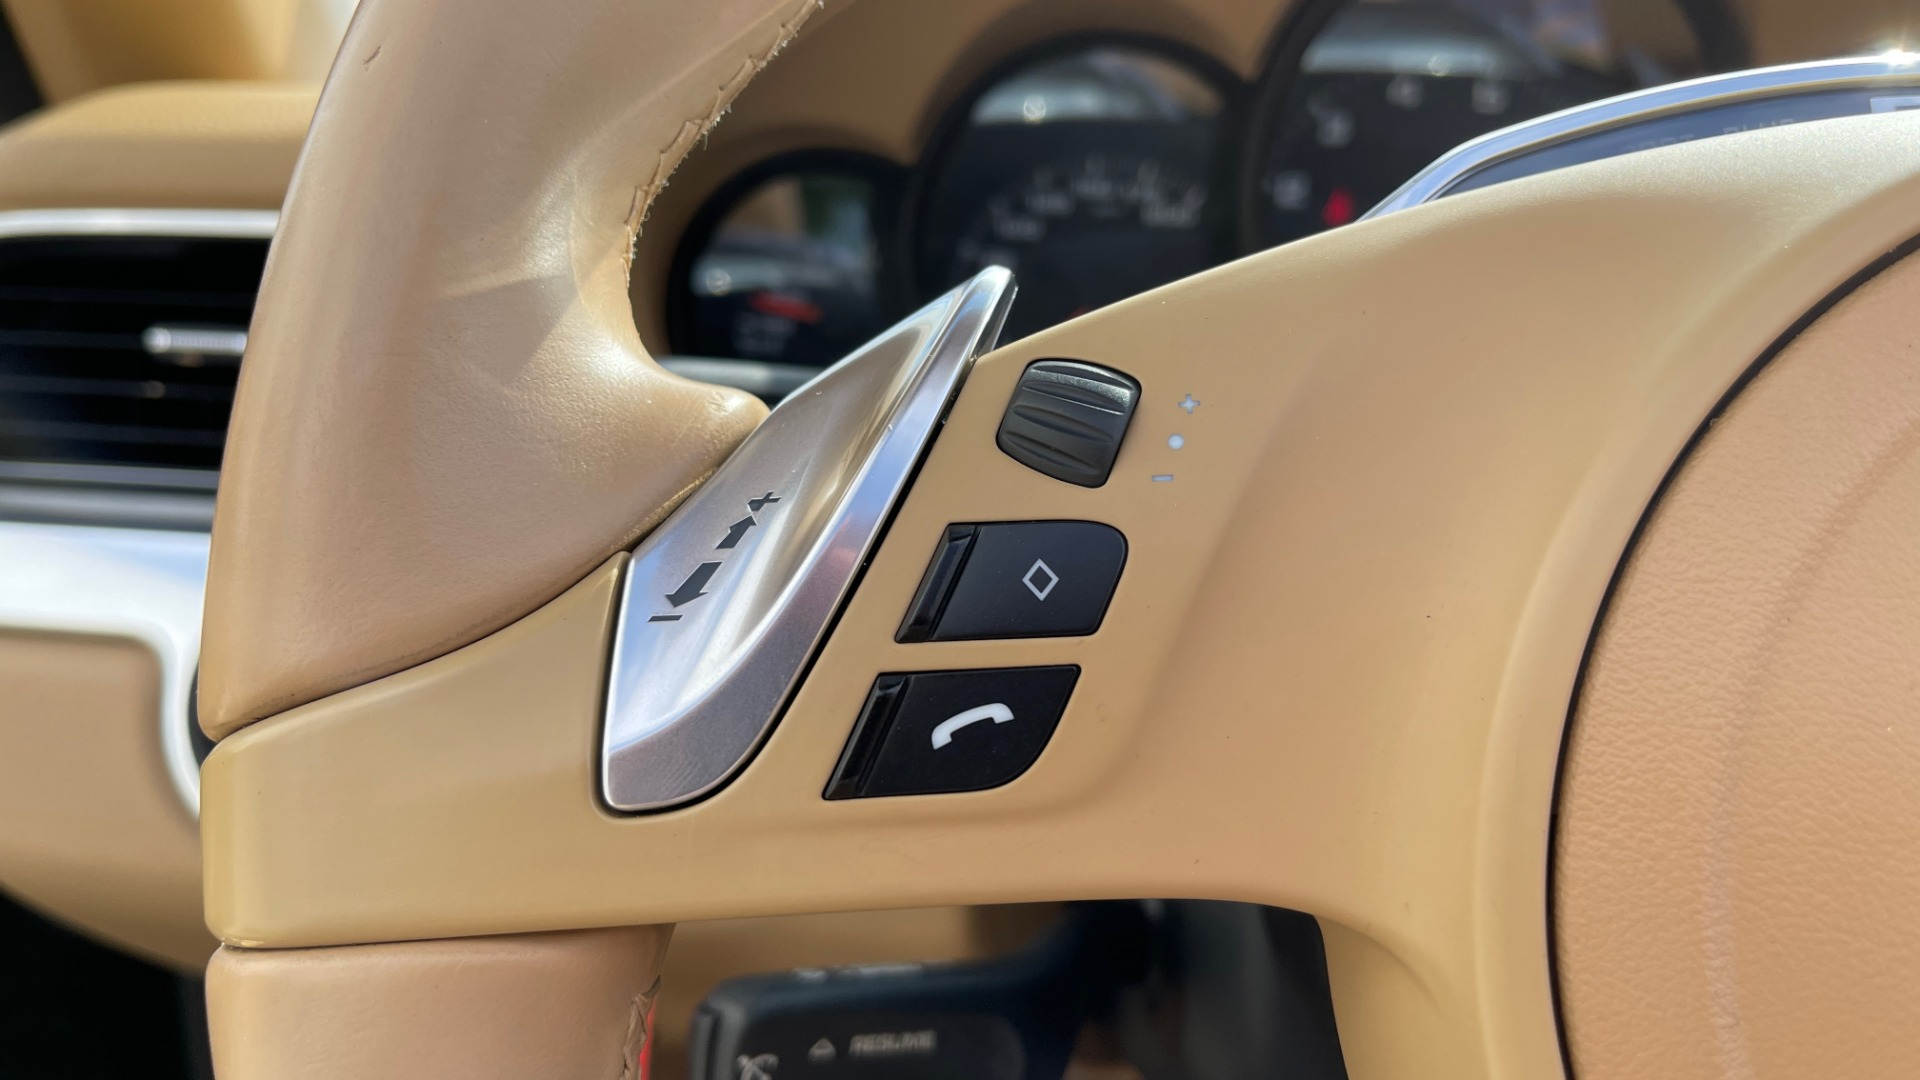 Used 2013 Porsche 911 CARRERA CABRIOLET / PDK / NAV / BOSE / HTD STS / PDLS for sale Sold at Formula Imports in Charlotte NC 28227 62